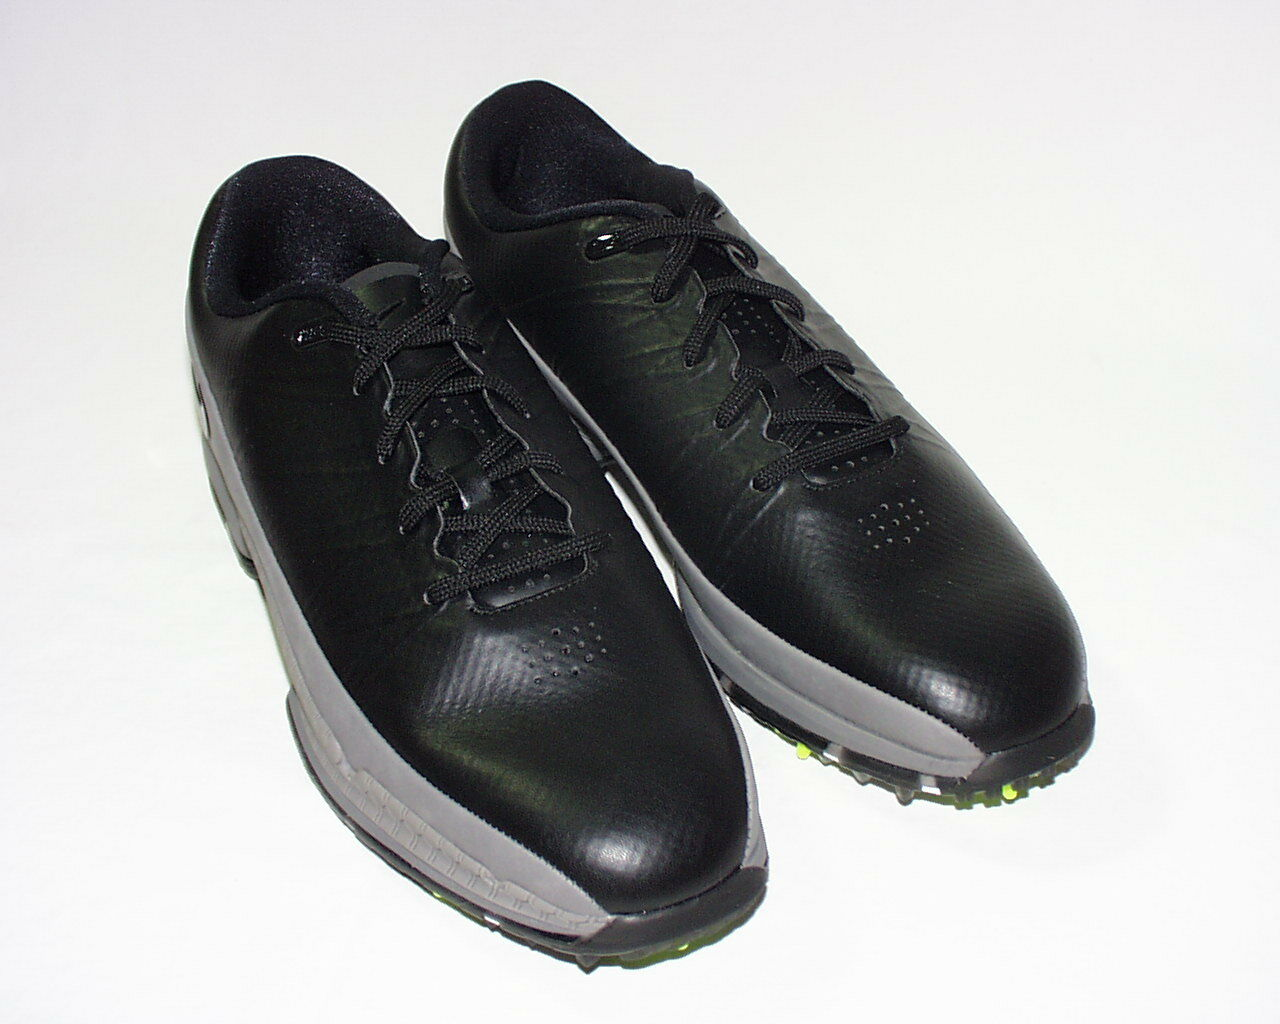 separation shoes c18c7 0e2aa ... Nike Air Zoom Zoom Zoom Attack Golf Shoe, Synthetic Microfiber Upper,  White or Black ...